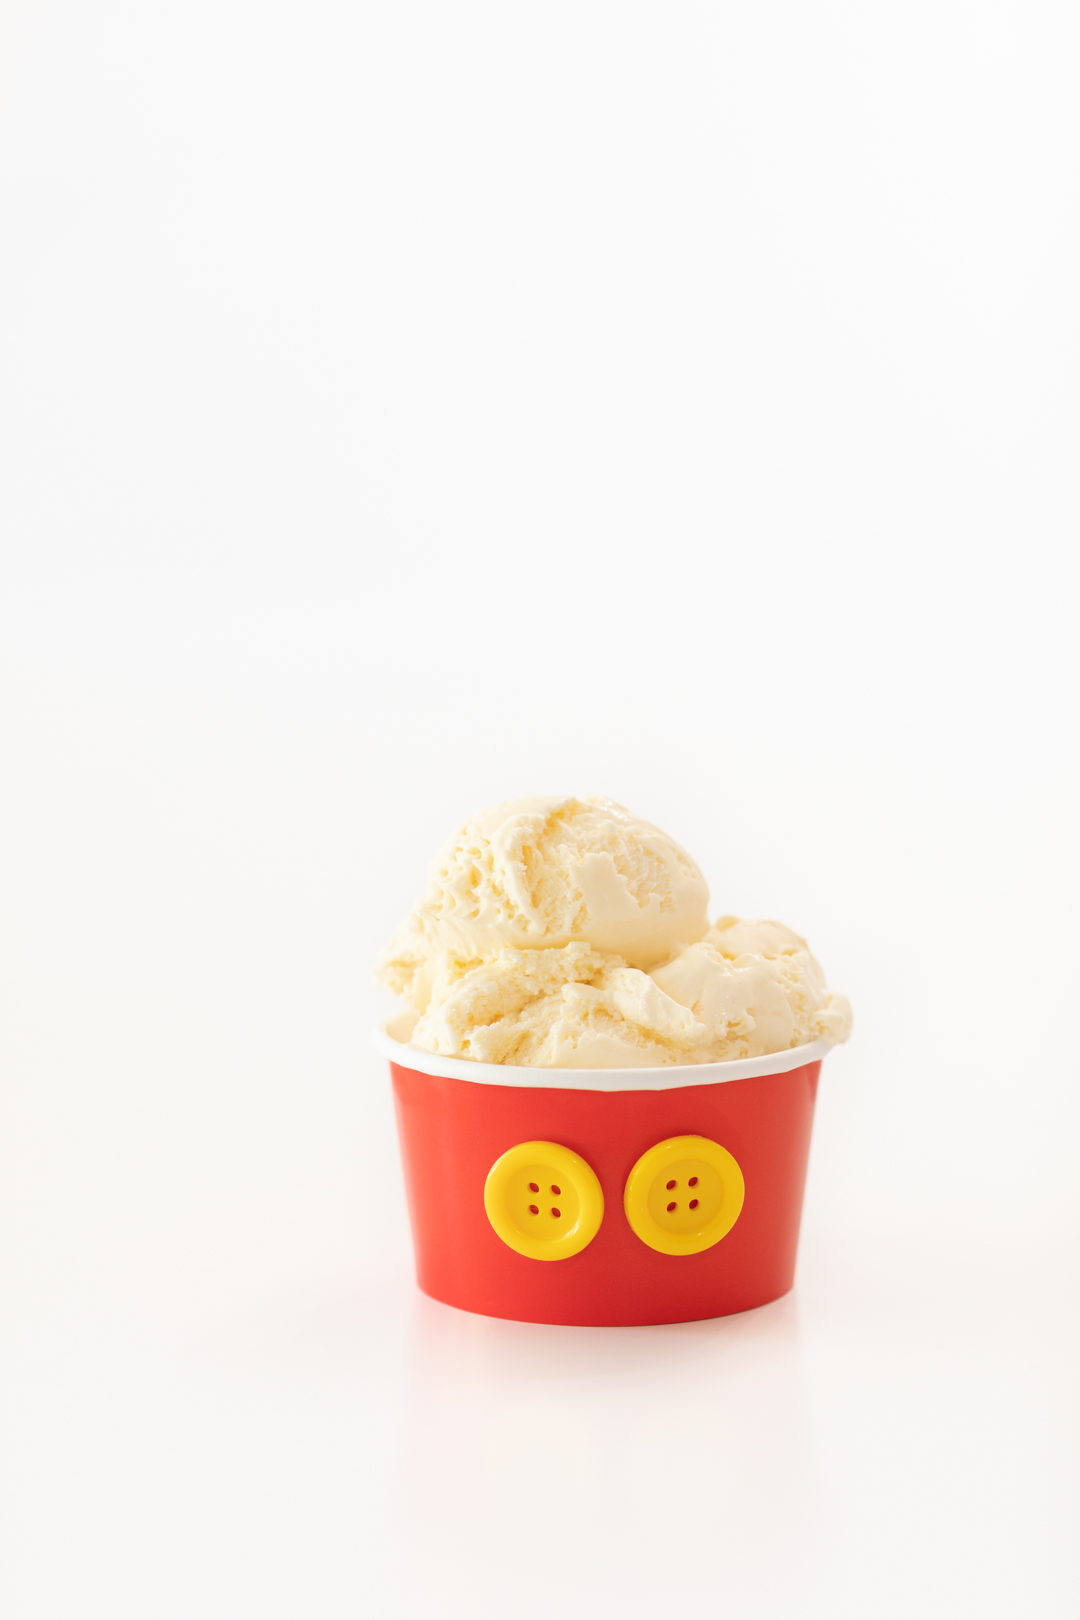 Mickey Mouse Cup with Yellow Buttons and Scoops of Vanilla Ice Cream